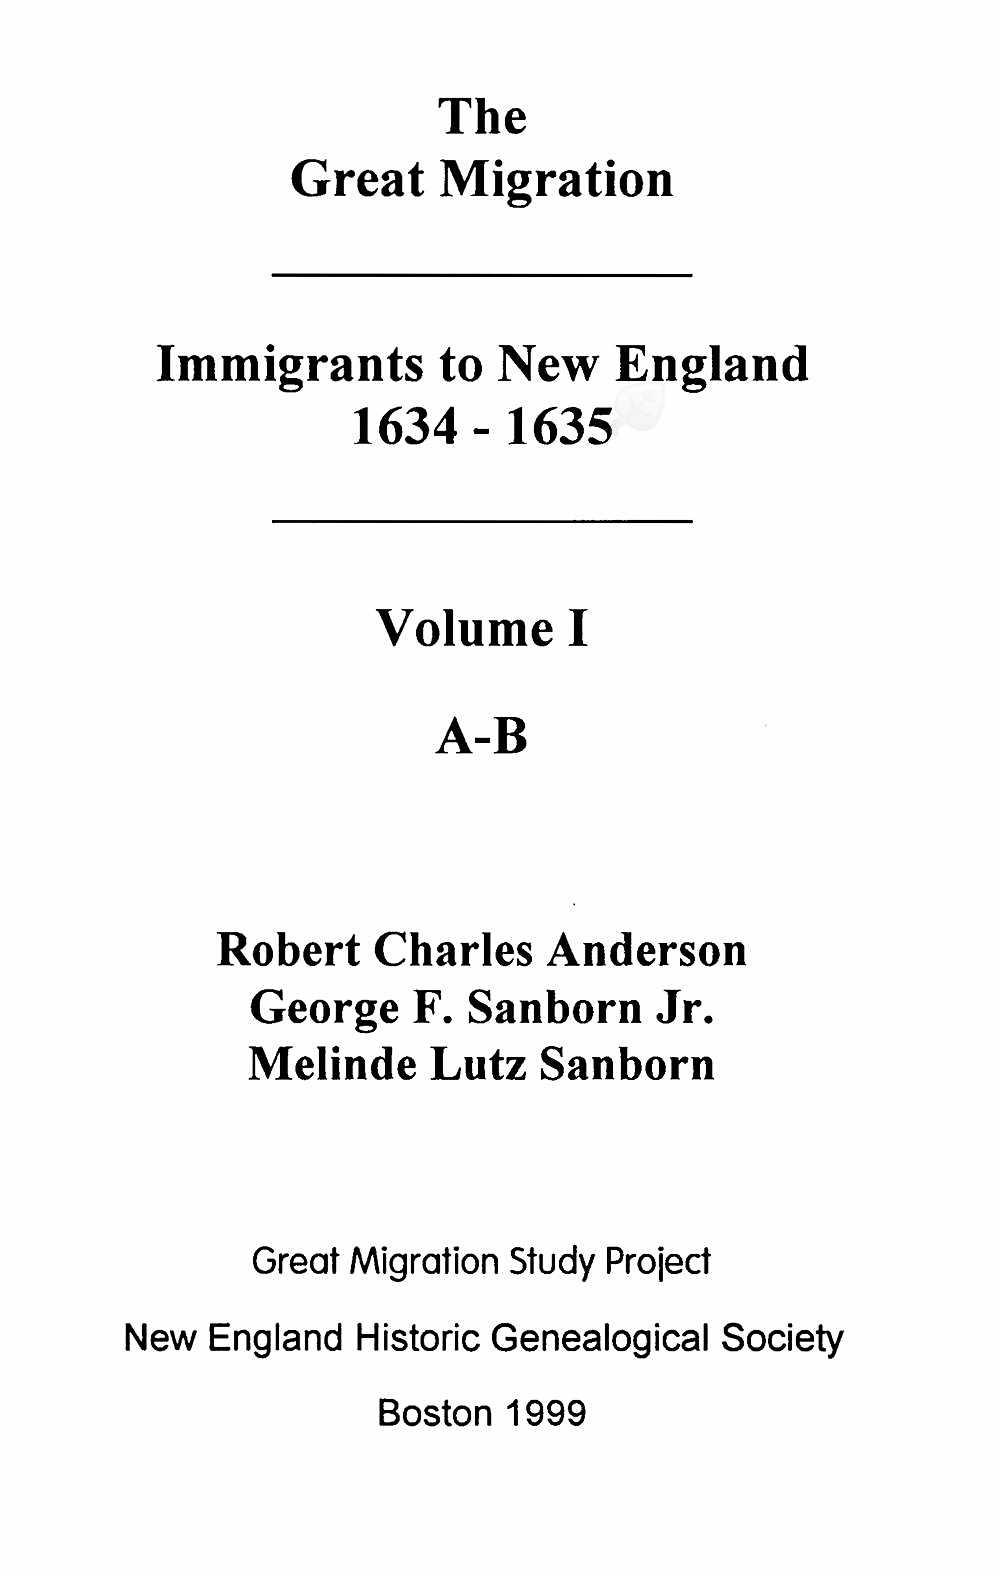 The Great Migration-Immigrants to New England, 1634-1635, Vol. I, A-B, William Bassett